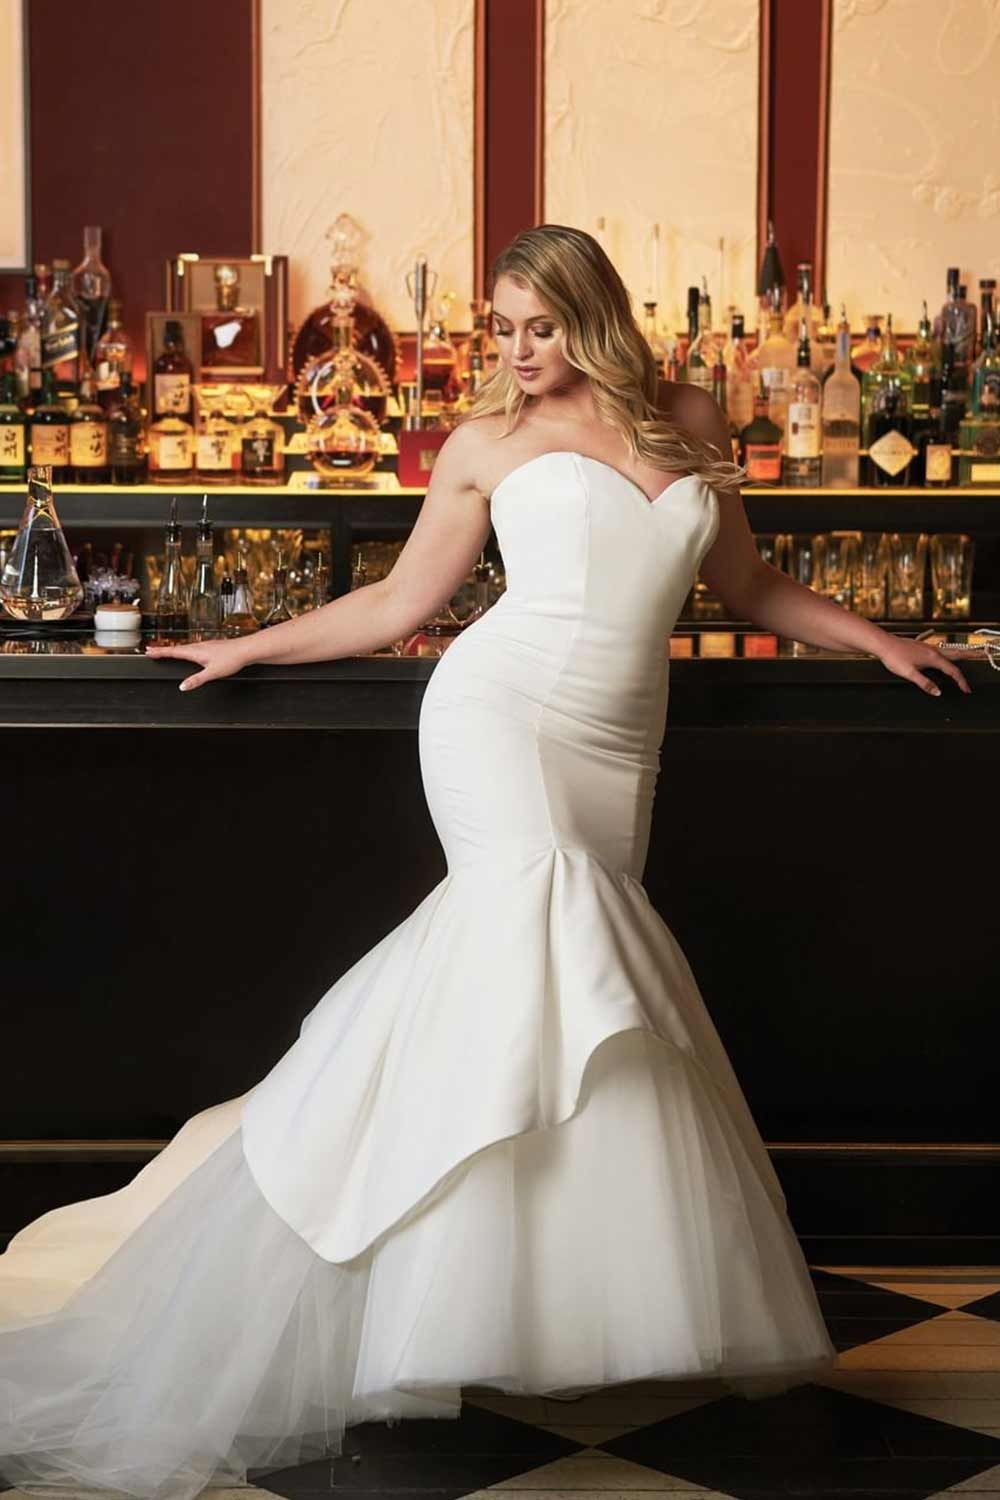 Plus Size Wedding Dresses For The Most Beautiful And Curvy Brides Satin Mermaid Wedding Dress Curvy Wedding Dress Plus Wedding Dresses [ 1500 x 1000 Pixel ]